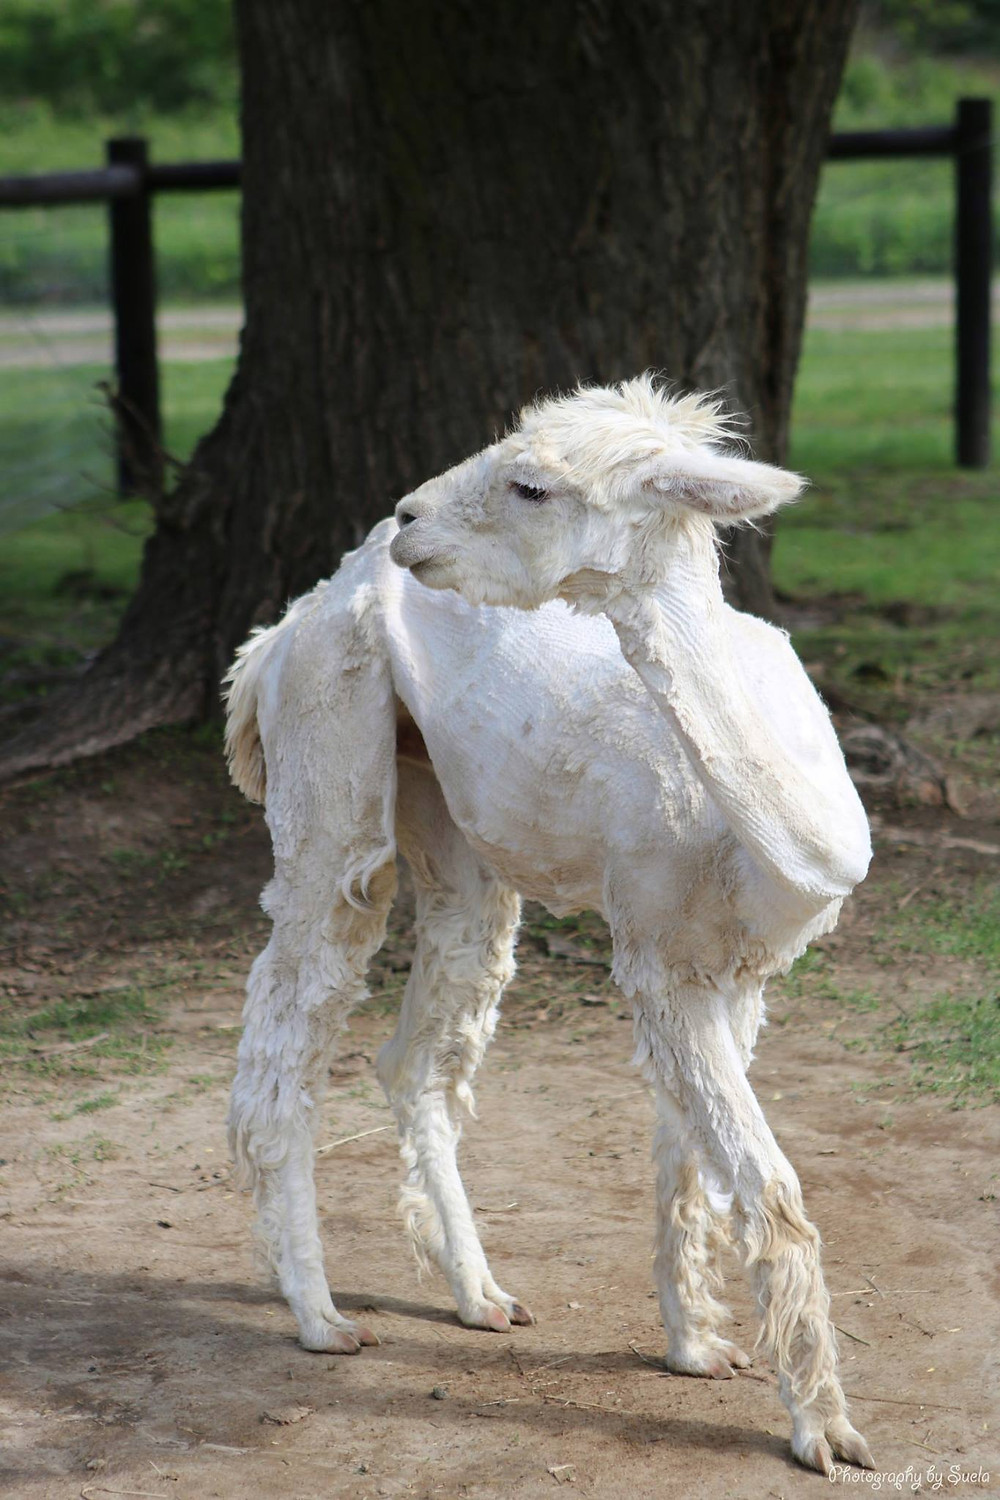 An Alpaca pictured after being shorn